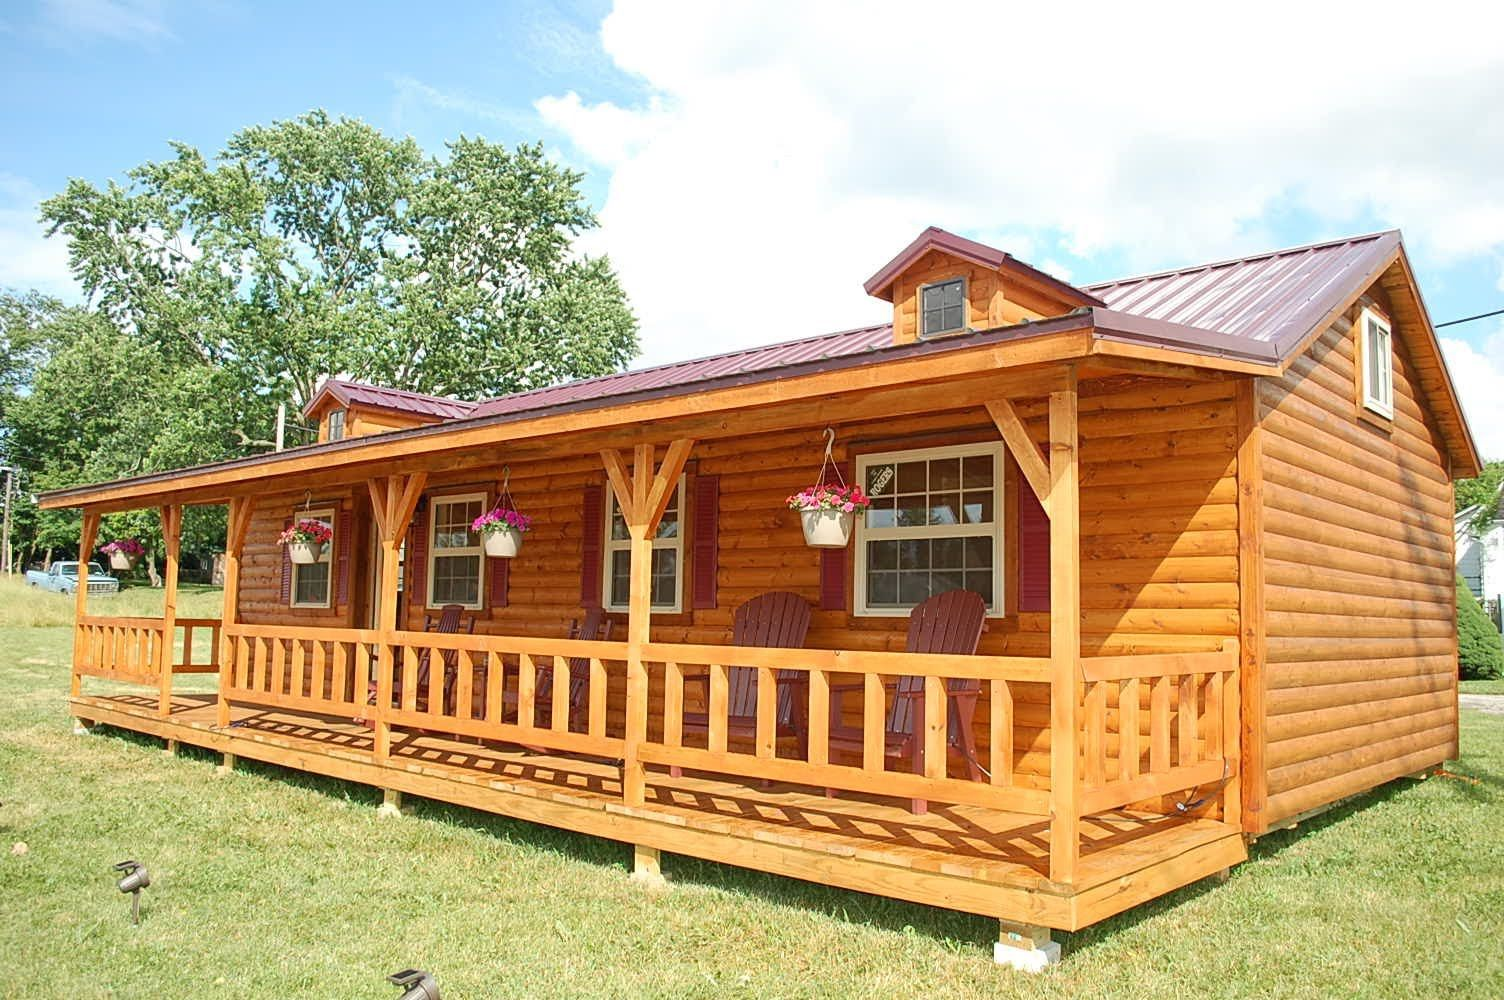 Amish cabin company appalachian model tour published on for Amish house builders